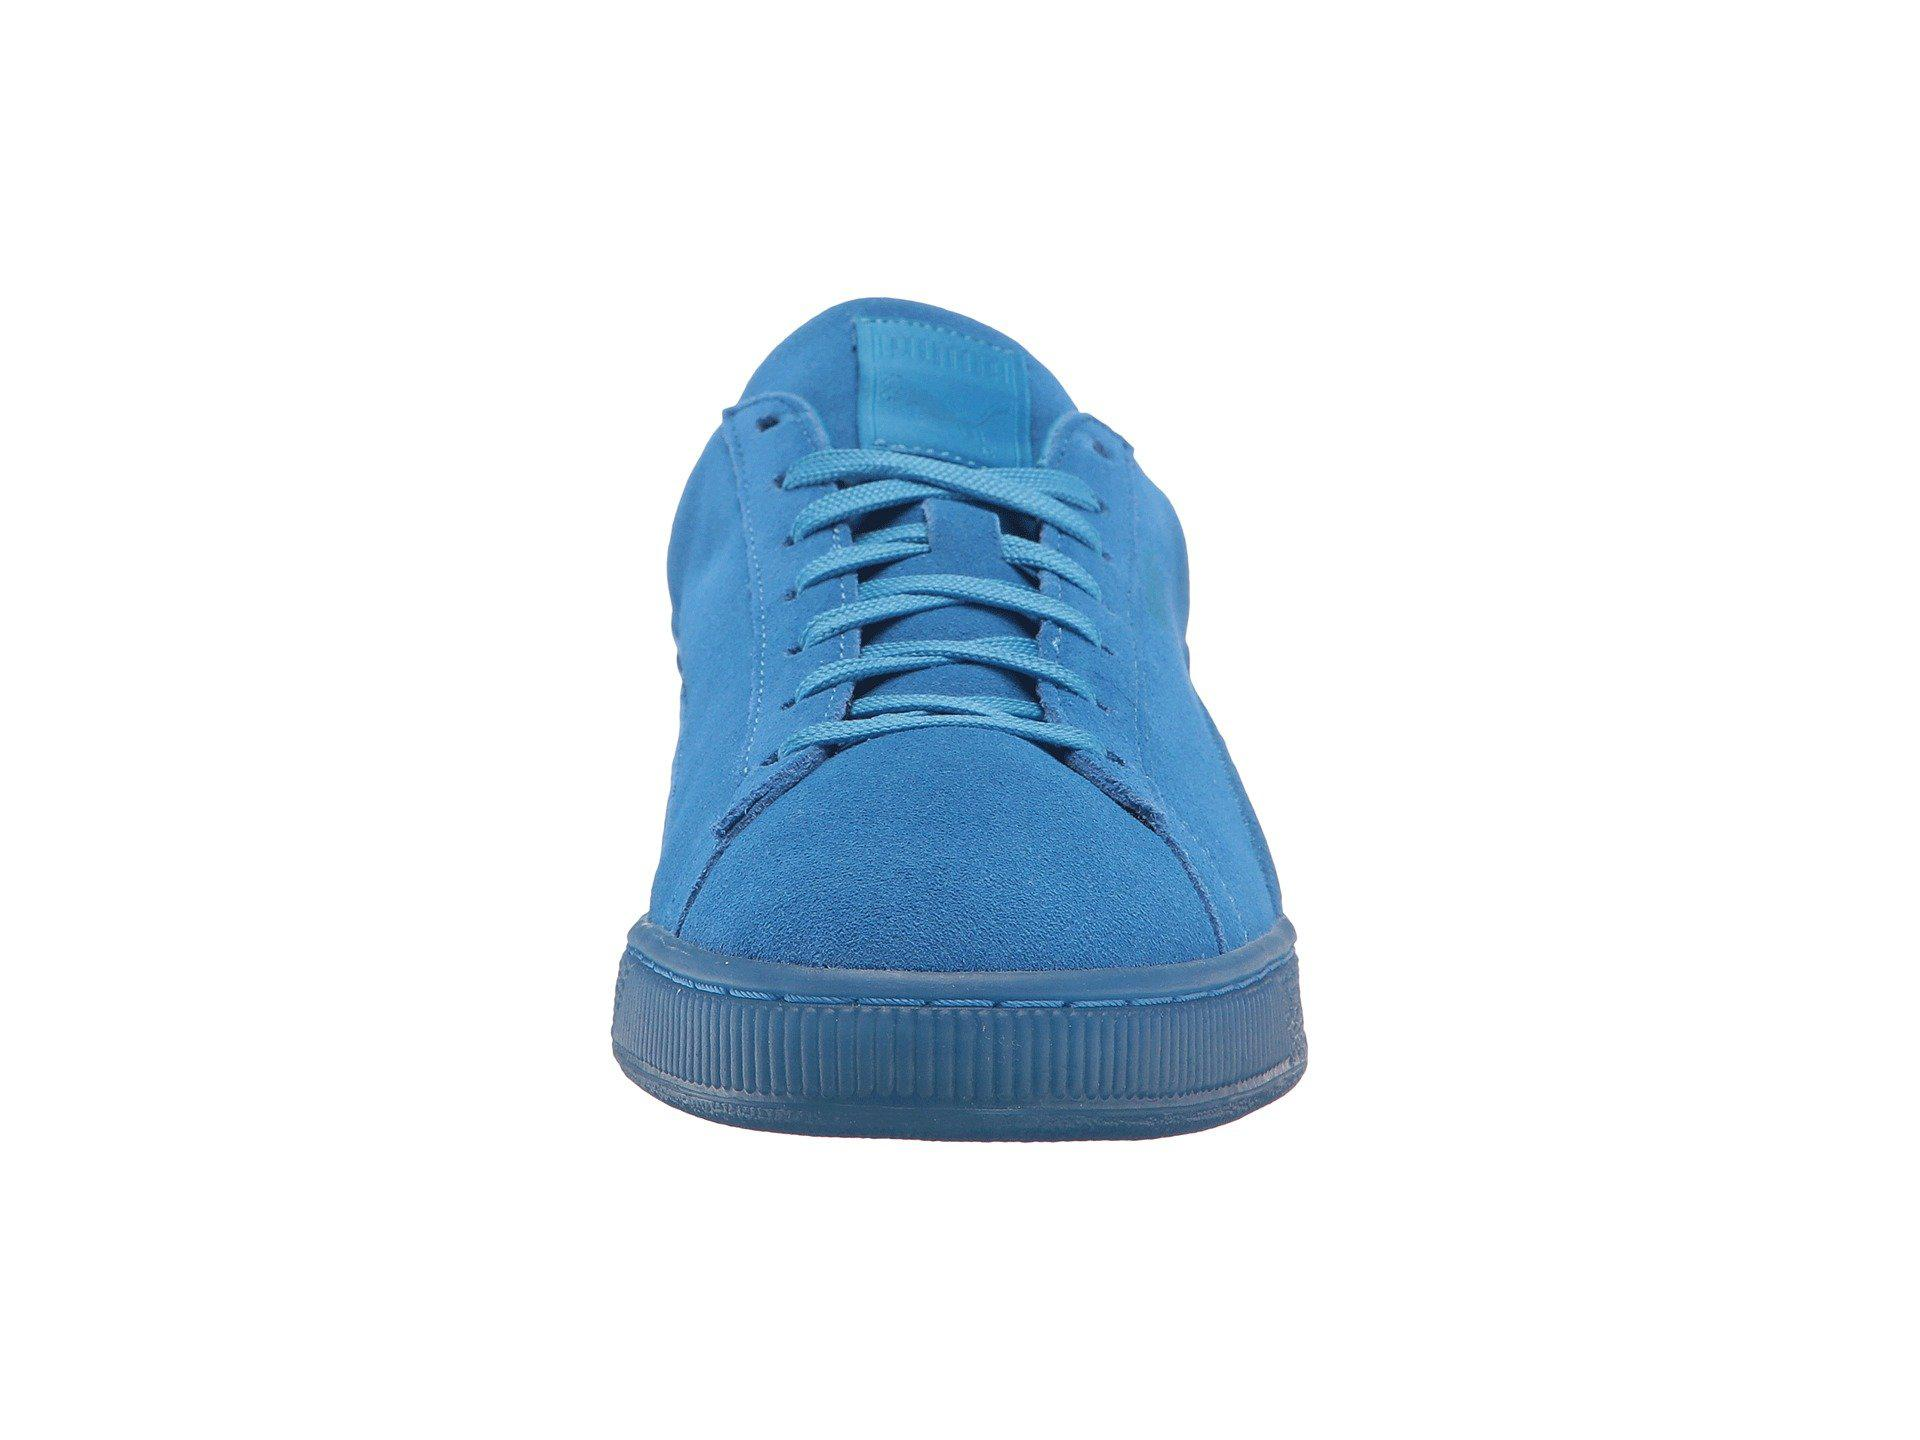 a4d51813342c PUMA - Blue Suede Classic Badged Ice for Men - Lyst. View fullscreen